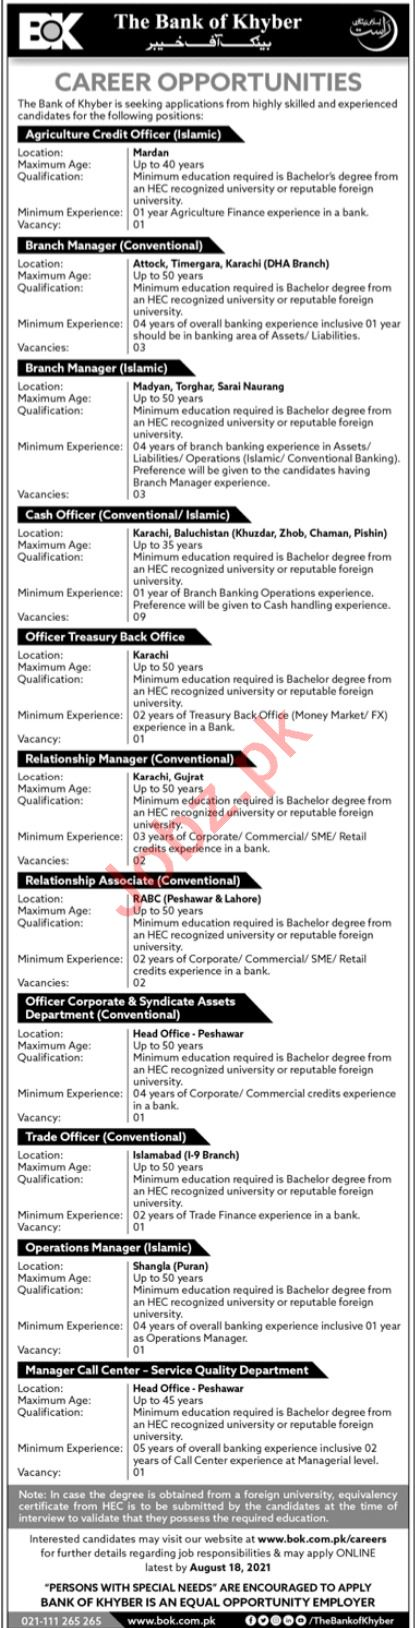 Bank of Khyber BOK Jobs 2021 for Branch Manager & Manager